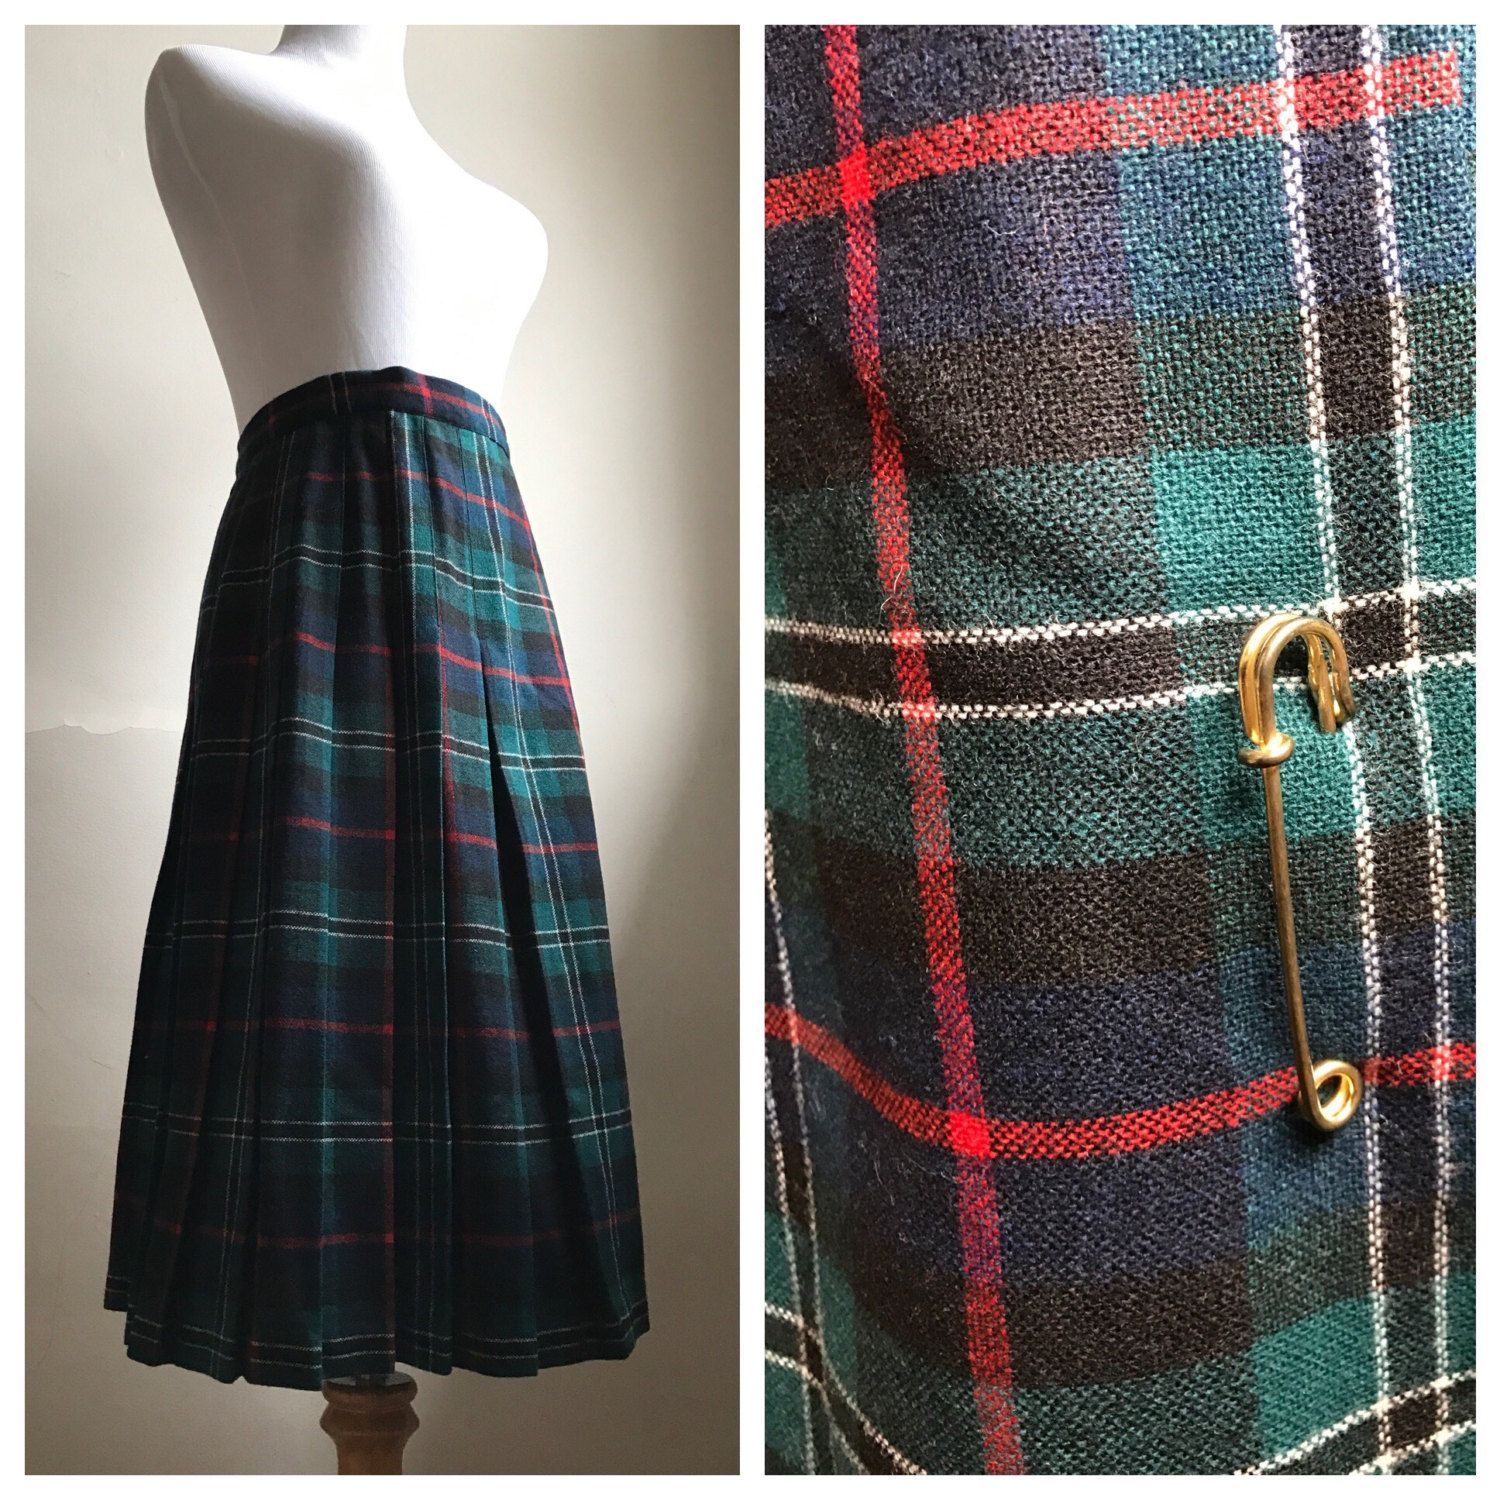 cfd23af5 Vintage Tartan Plaid Pleated Skirt | 70s Green Christmas Plaid Skirt |  Irish Plaid Style Skirt | School Girl Preppy Skirt | FREE SHIPPING by ...